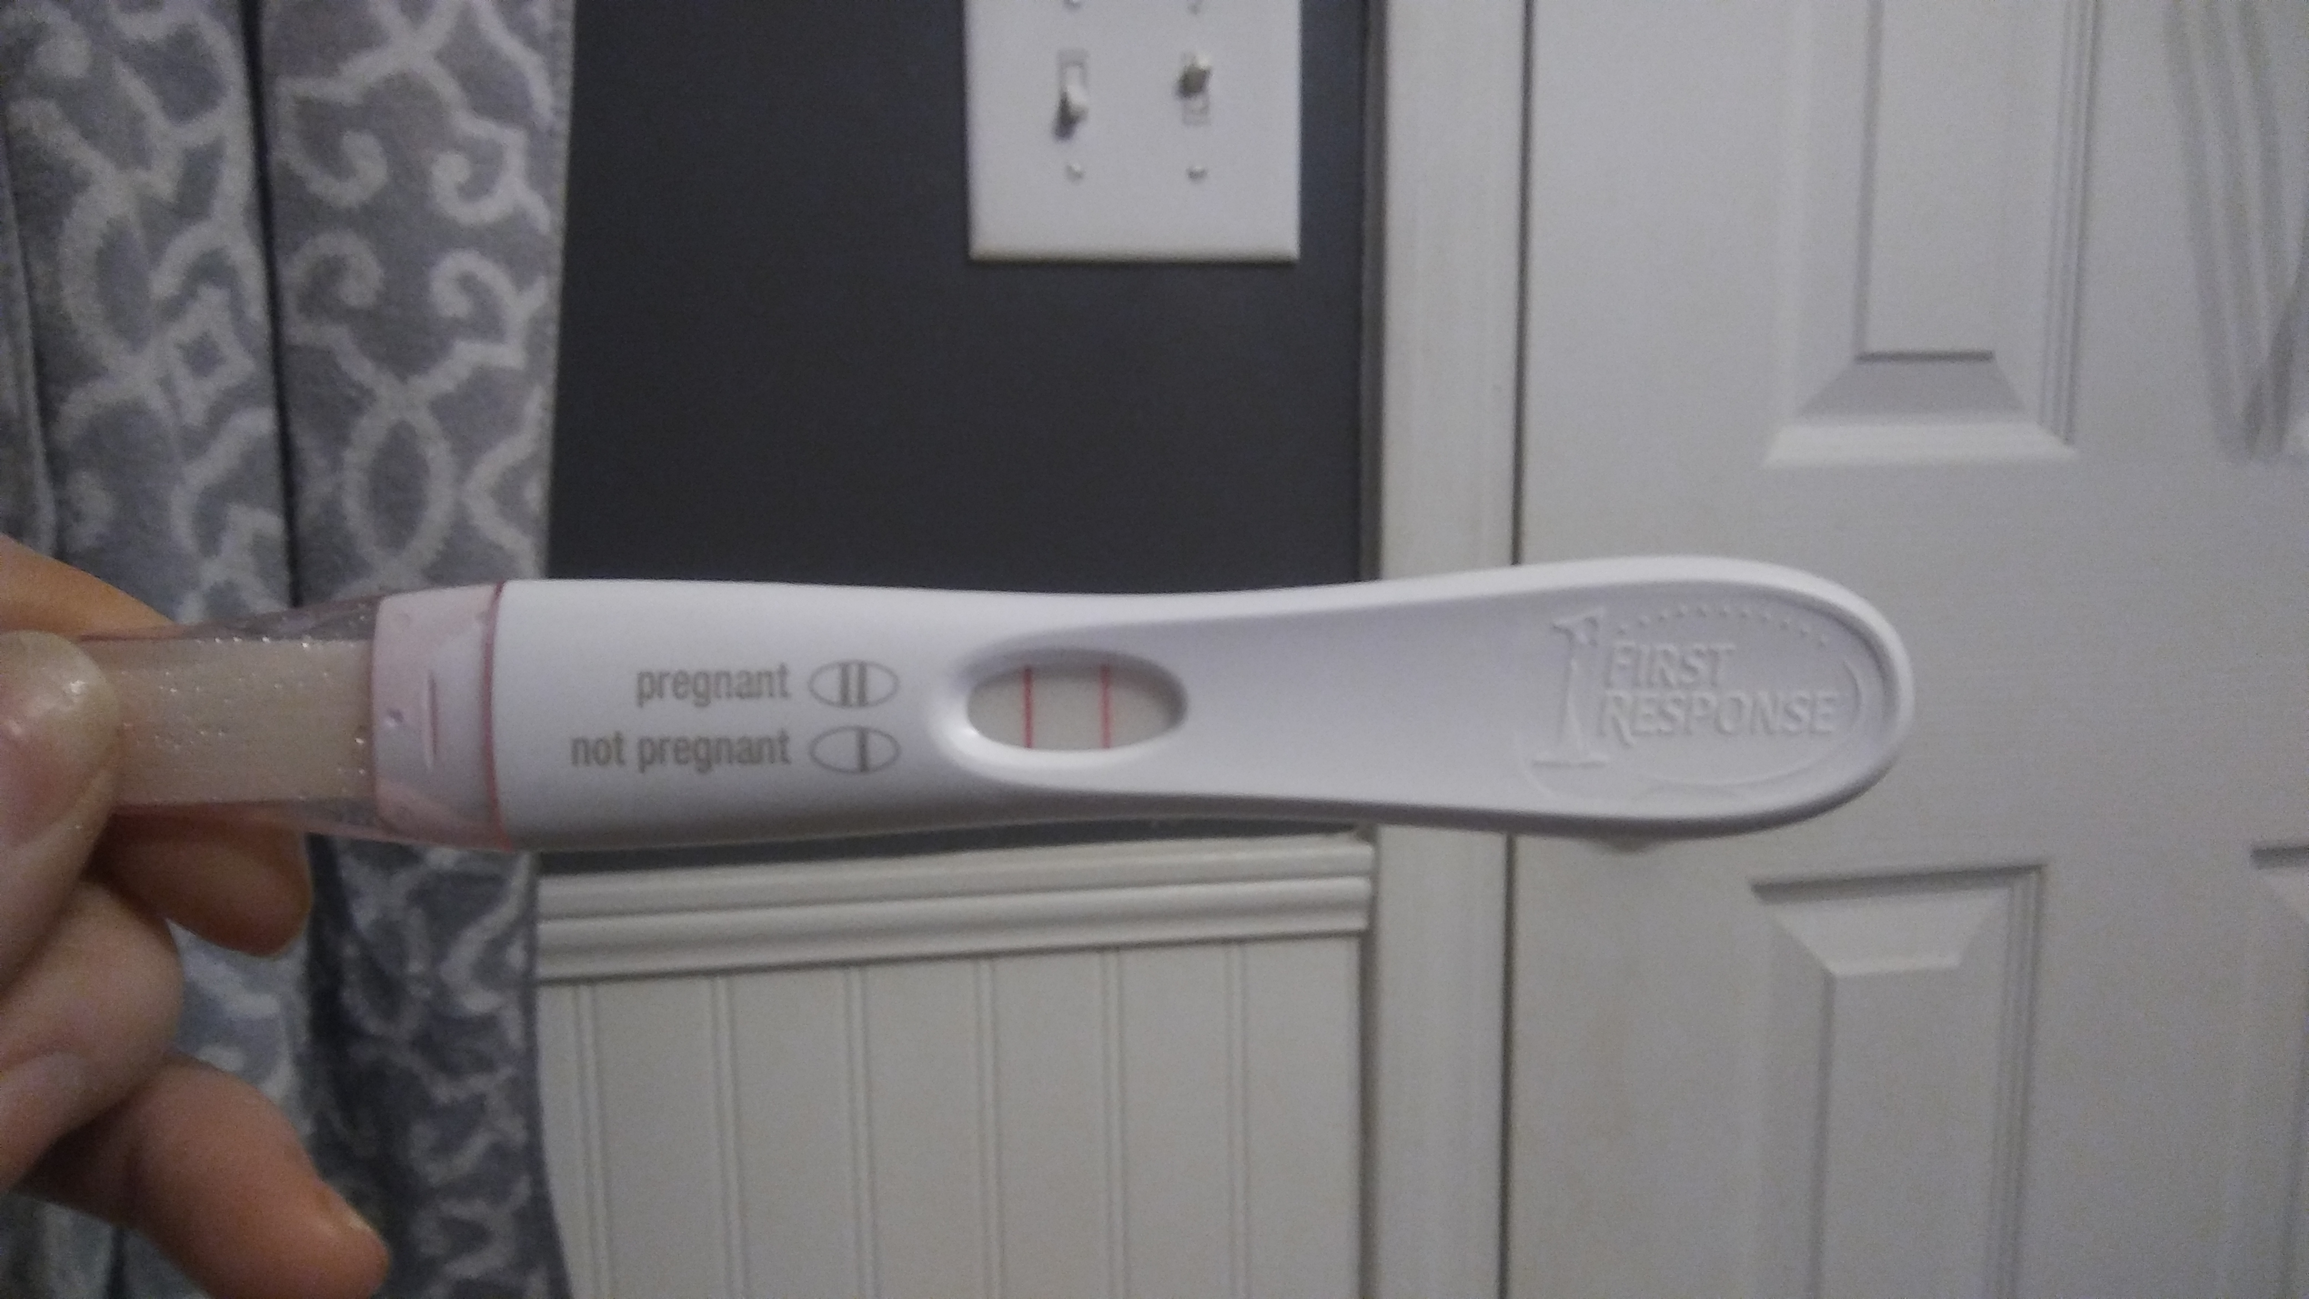 How Many Days After Implantation Will A Pregnancy Test Show Positive